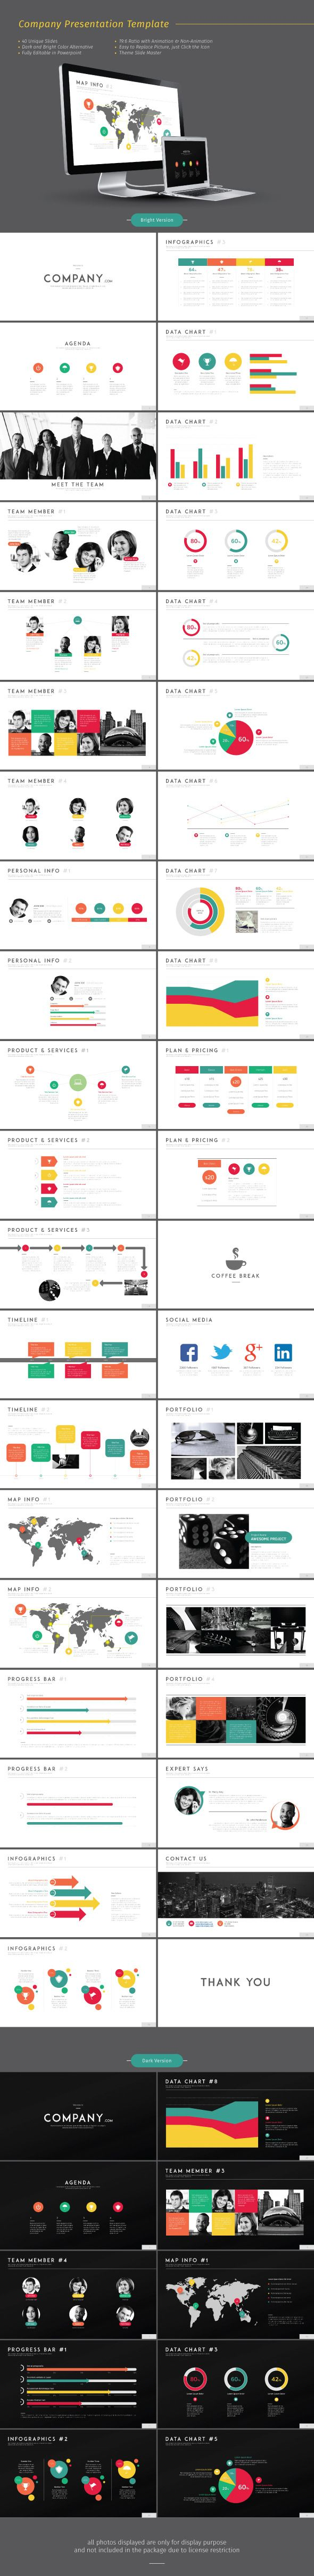 Best Free Presentation Templates Images On Pinterest - Best of company profile ppt scheme